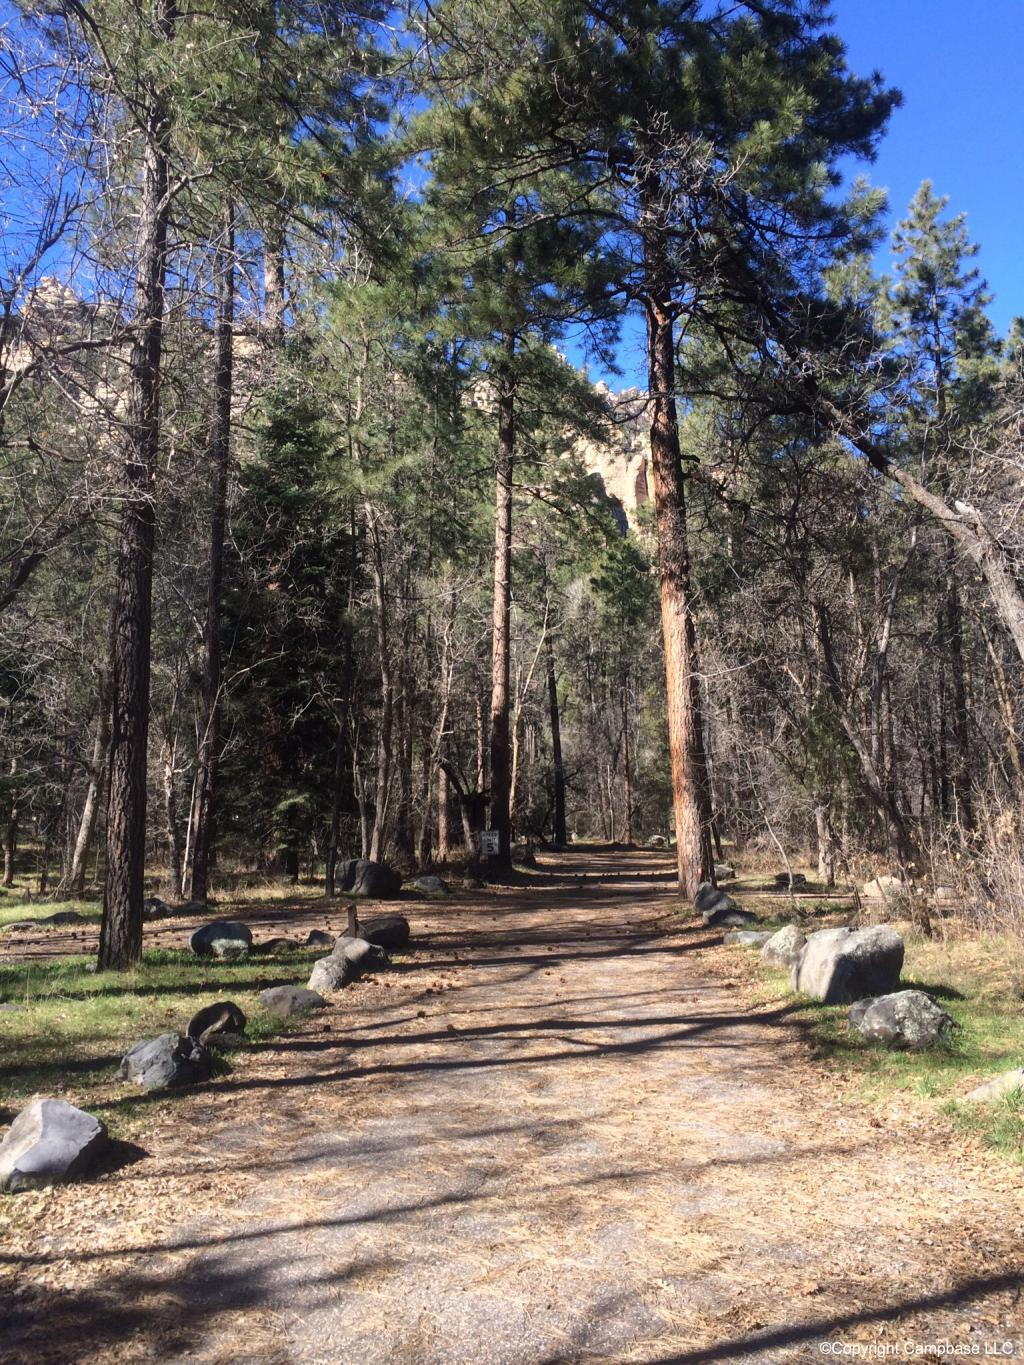 Cave Springs Campground Coconino Nf Sedona Arizona